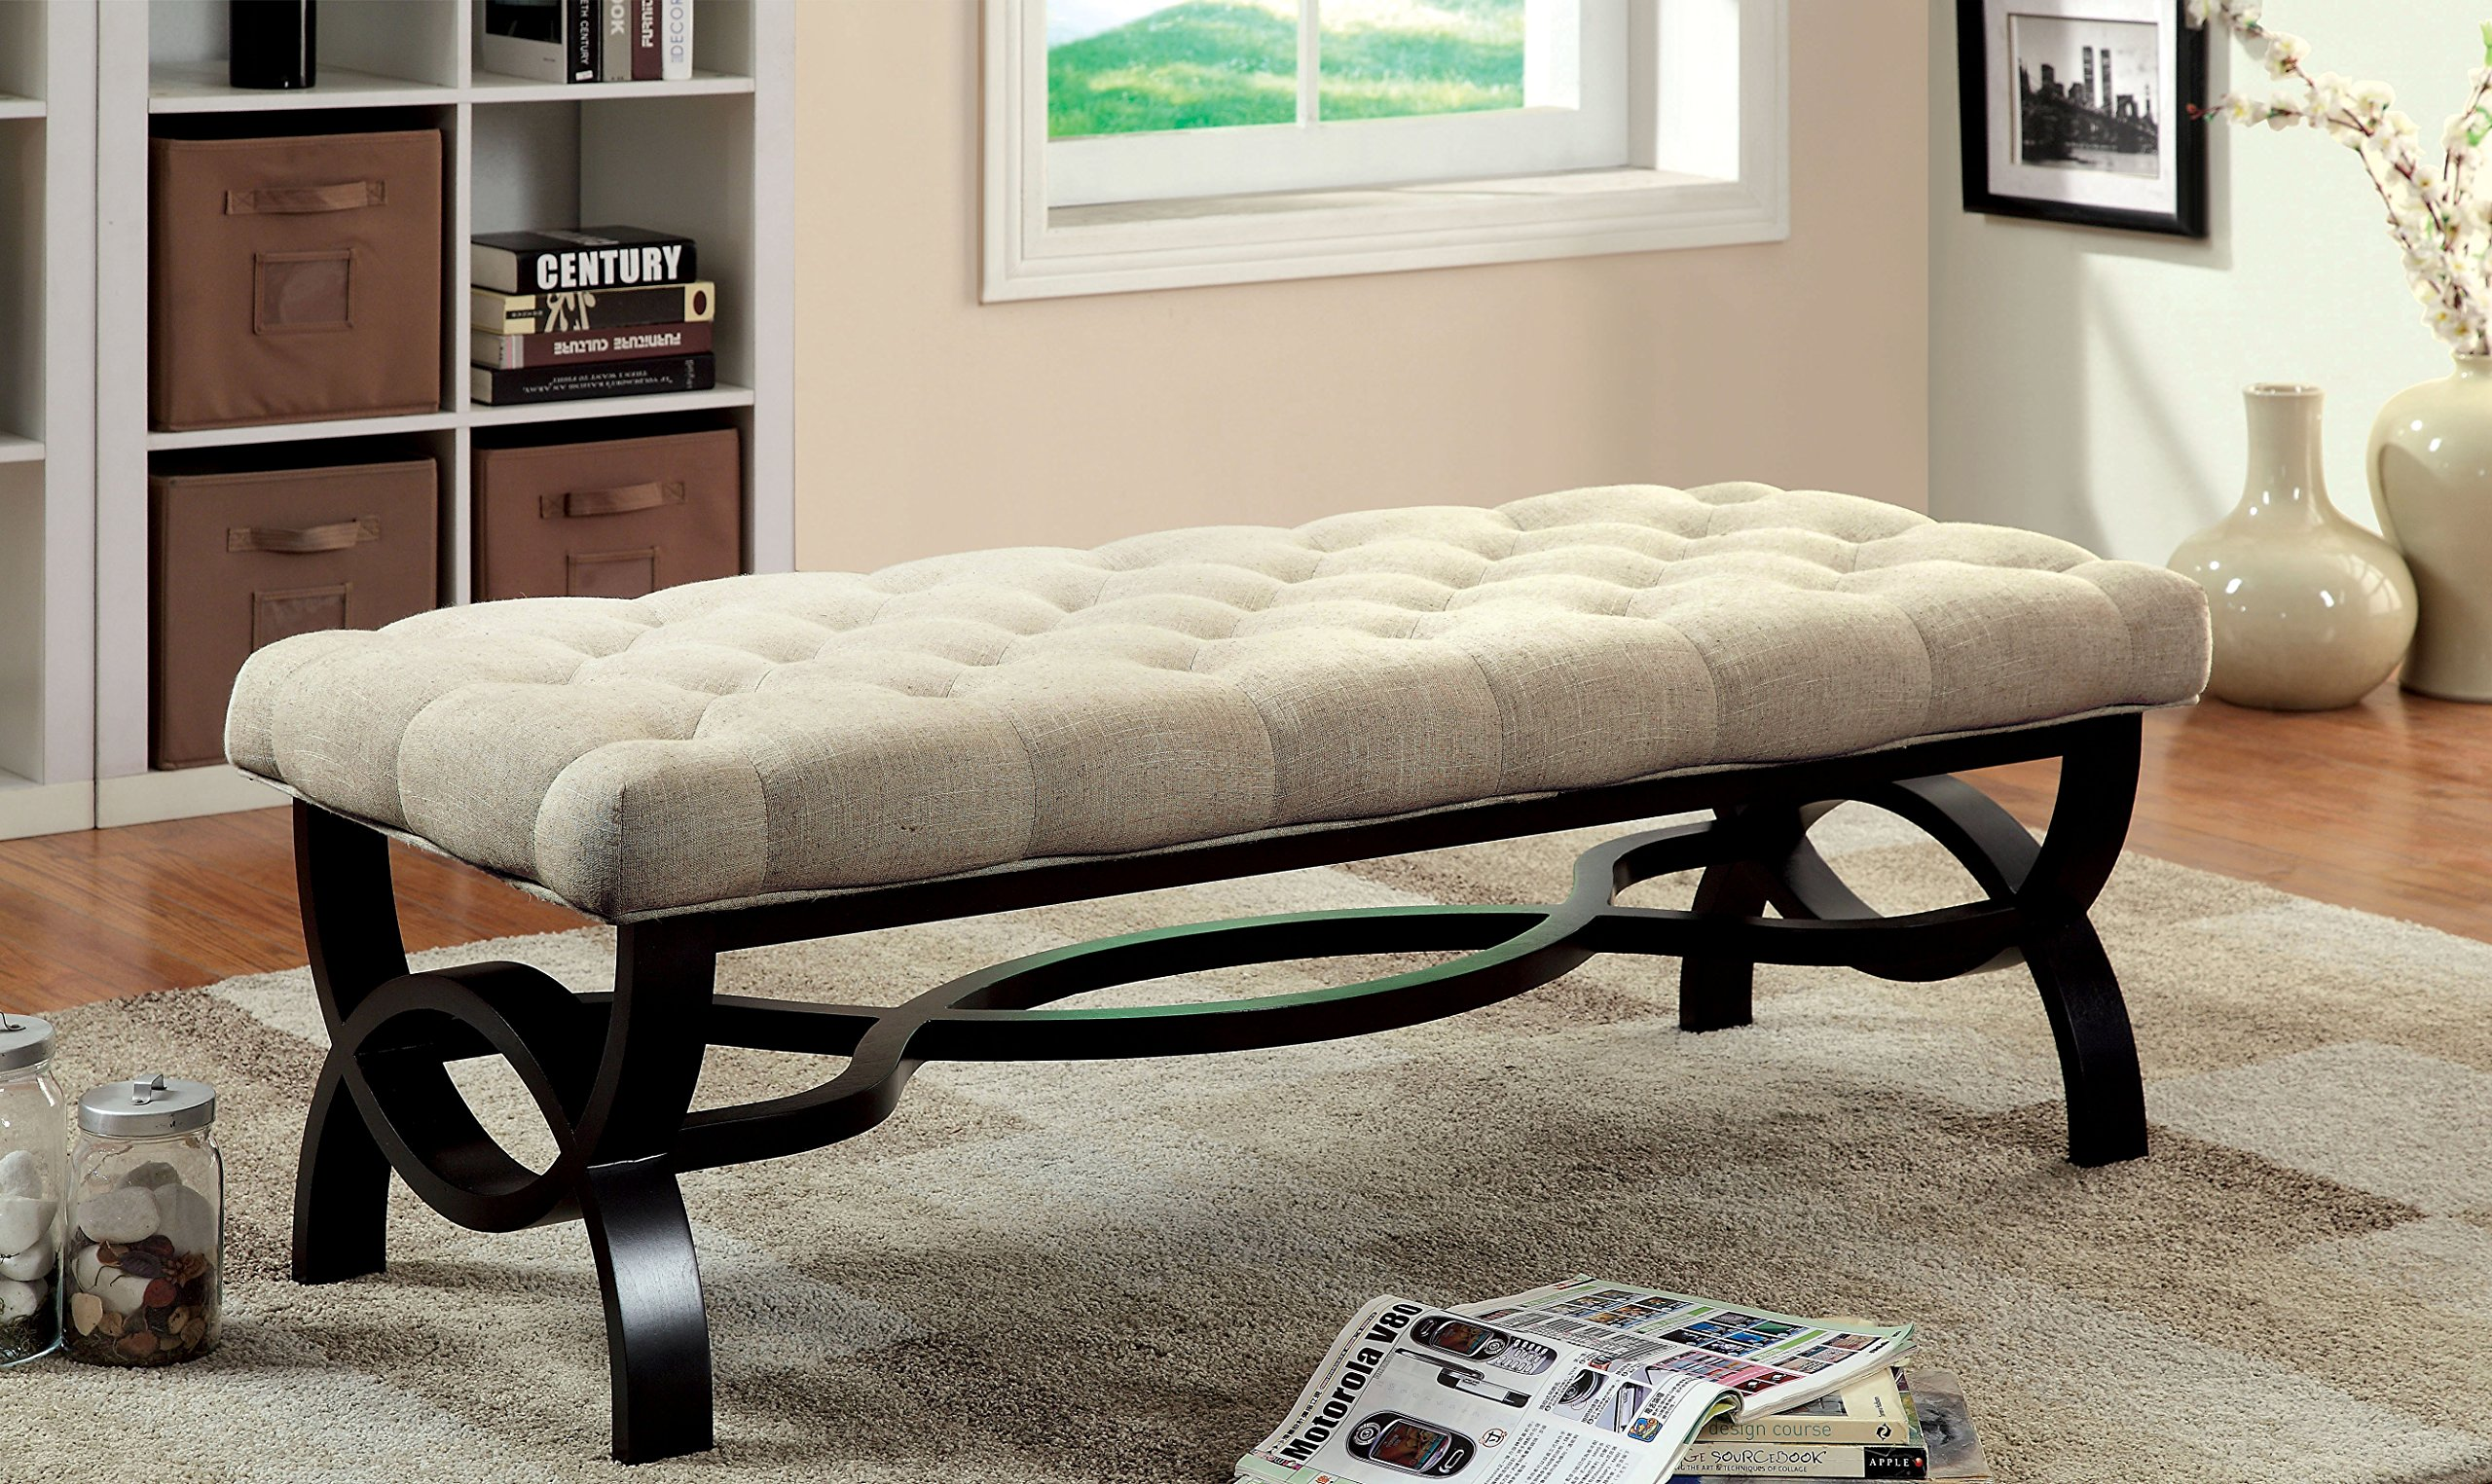 Furniture of America Beatrice Upholstered Accent Bench, Short